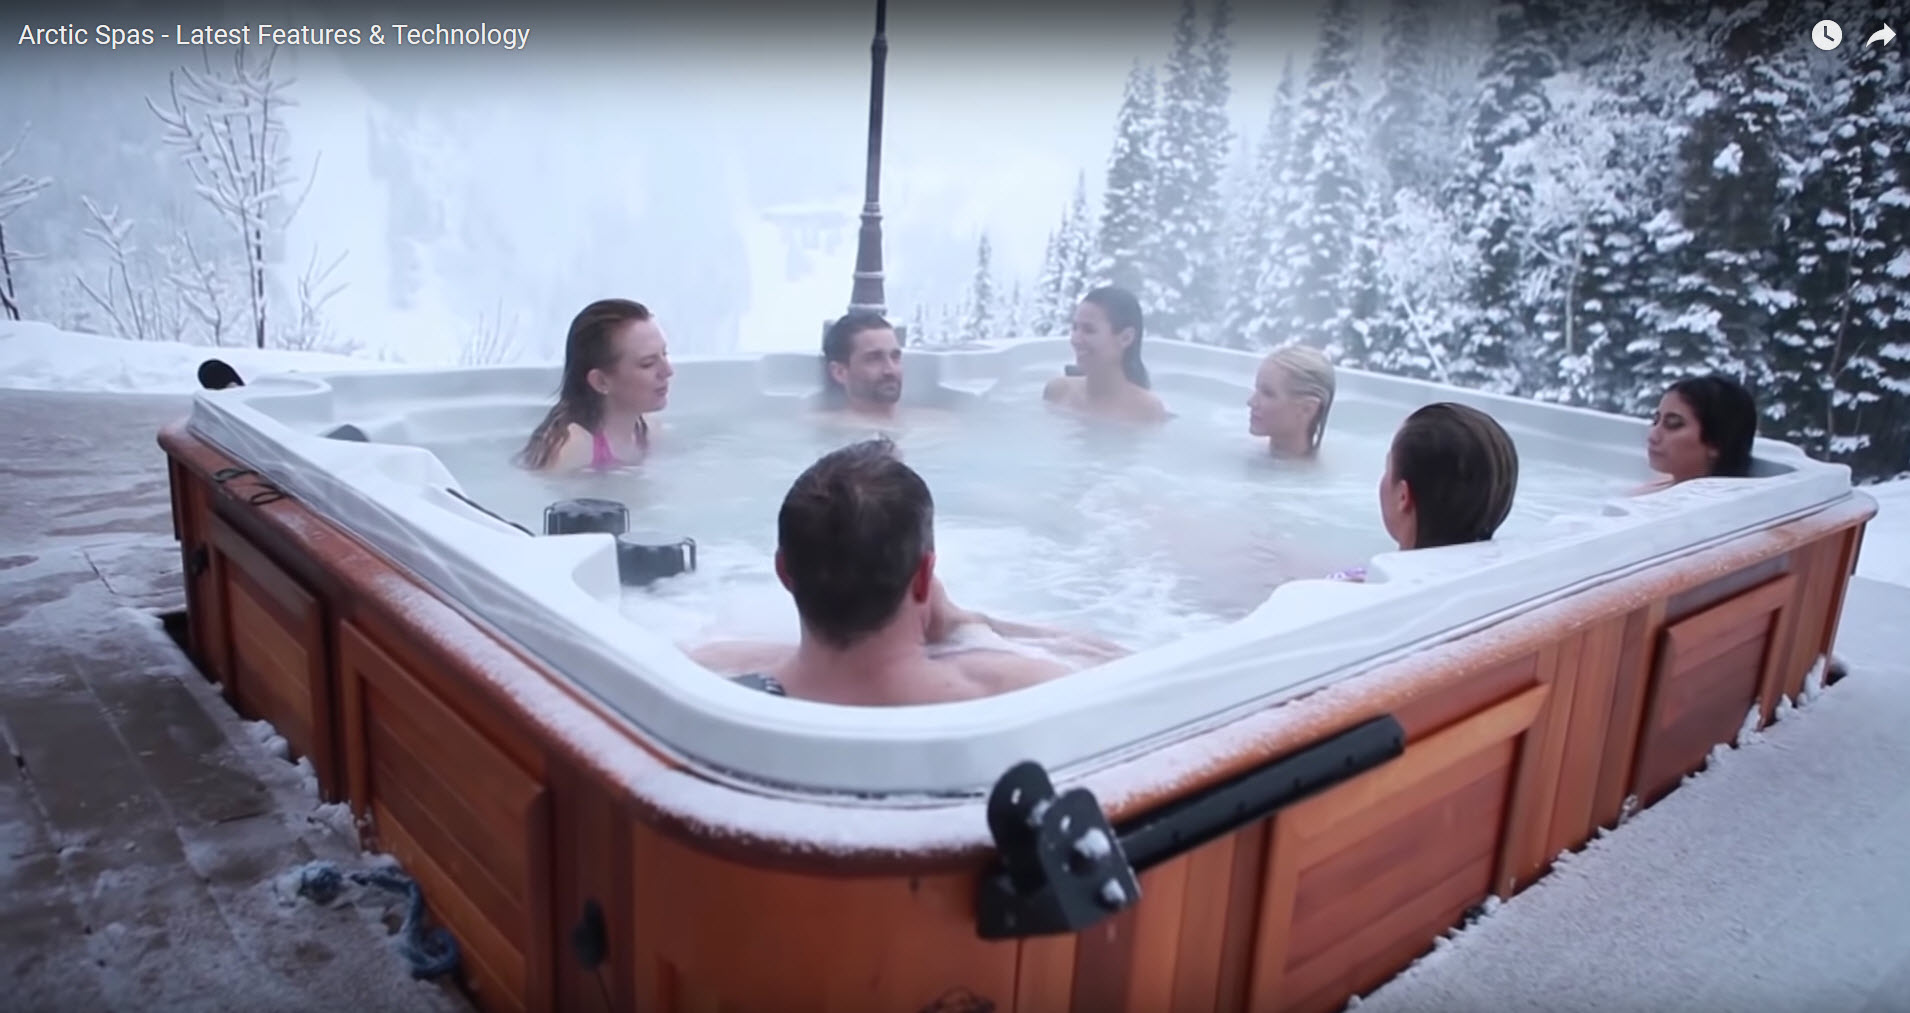 Arctic Spas - Latest Features & Technolo